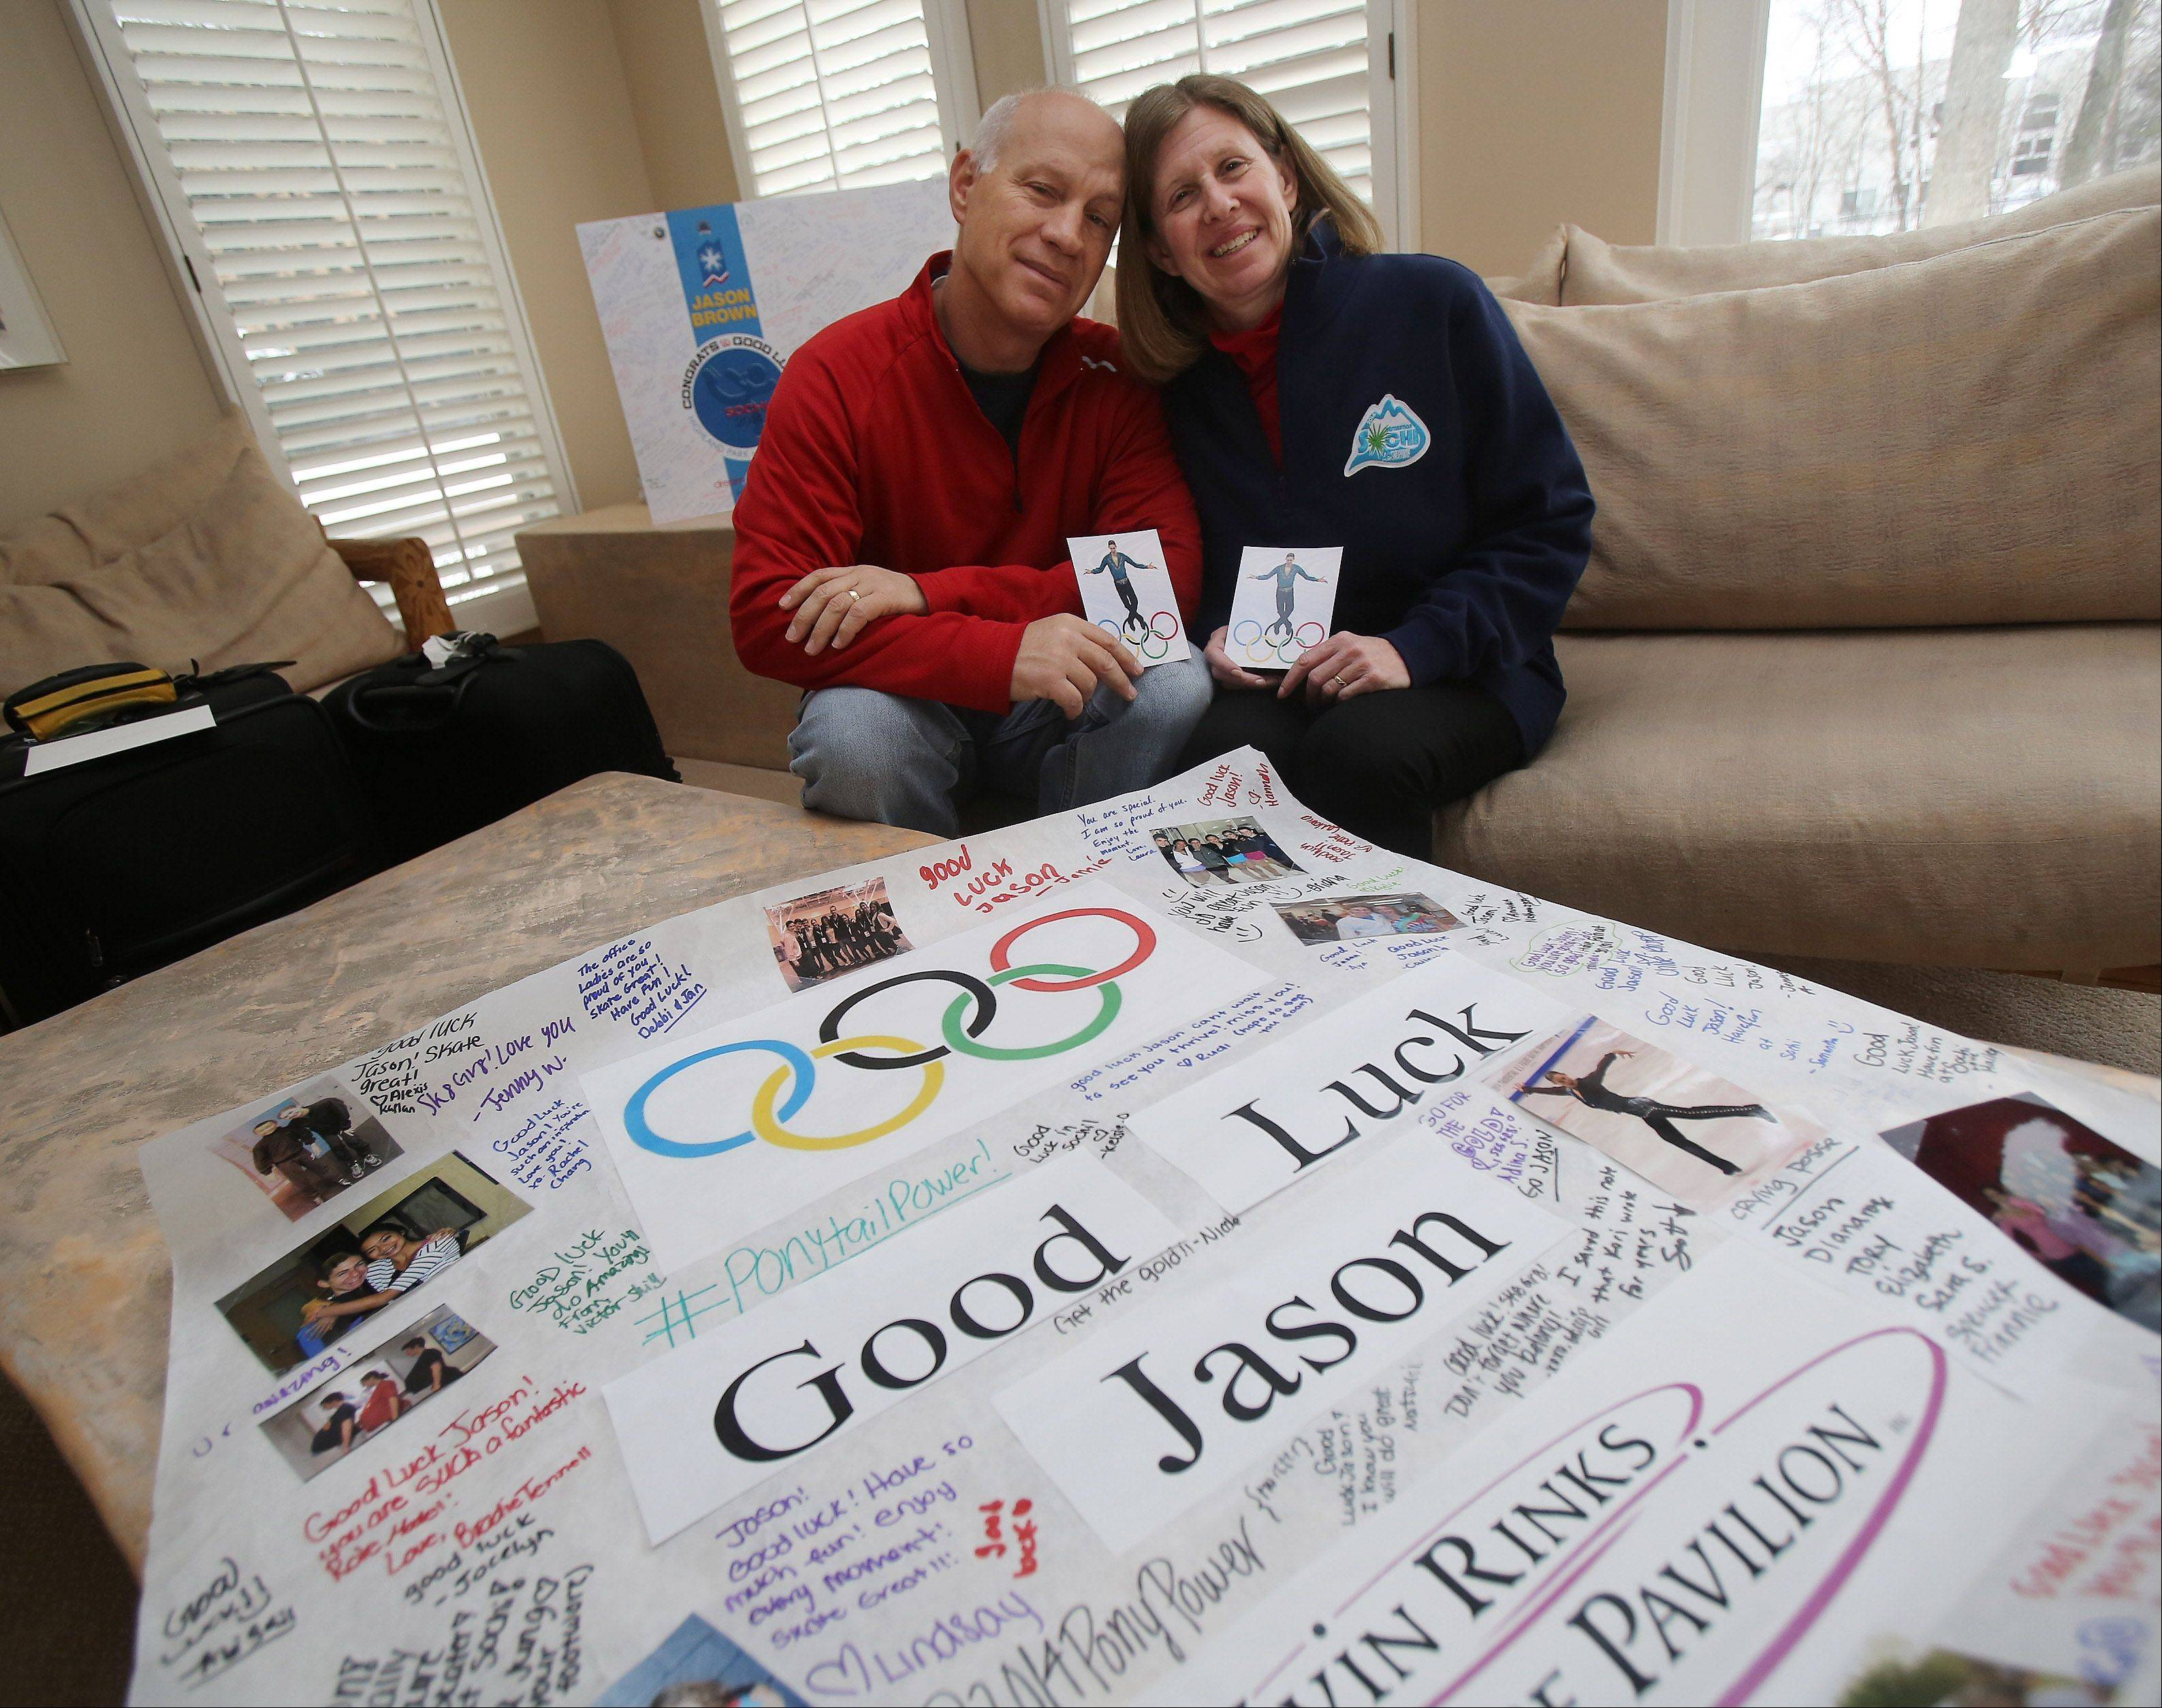 Steve and Marla Brown of Highland Park are heading to Sochi, Russia, to watch their son Jason — seen at top at the U.S. Figure Skating Championships last month in Boston — compete in men's figure skating at the Olympics.